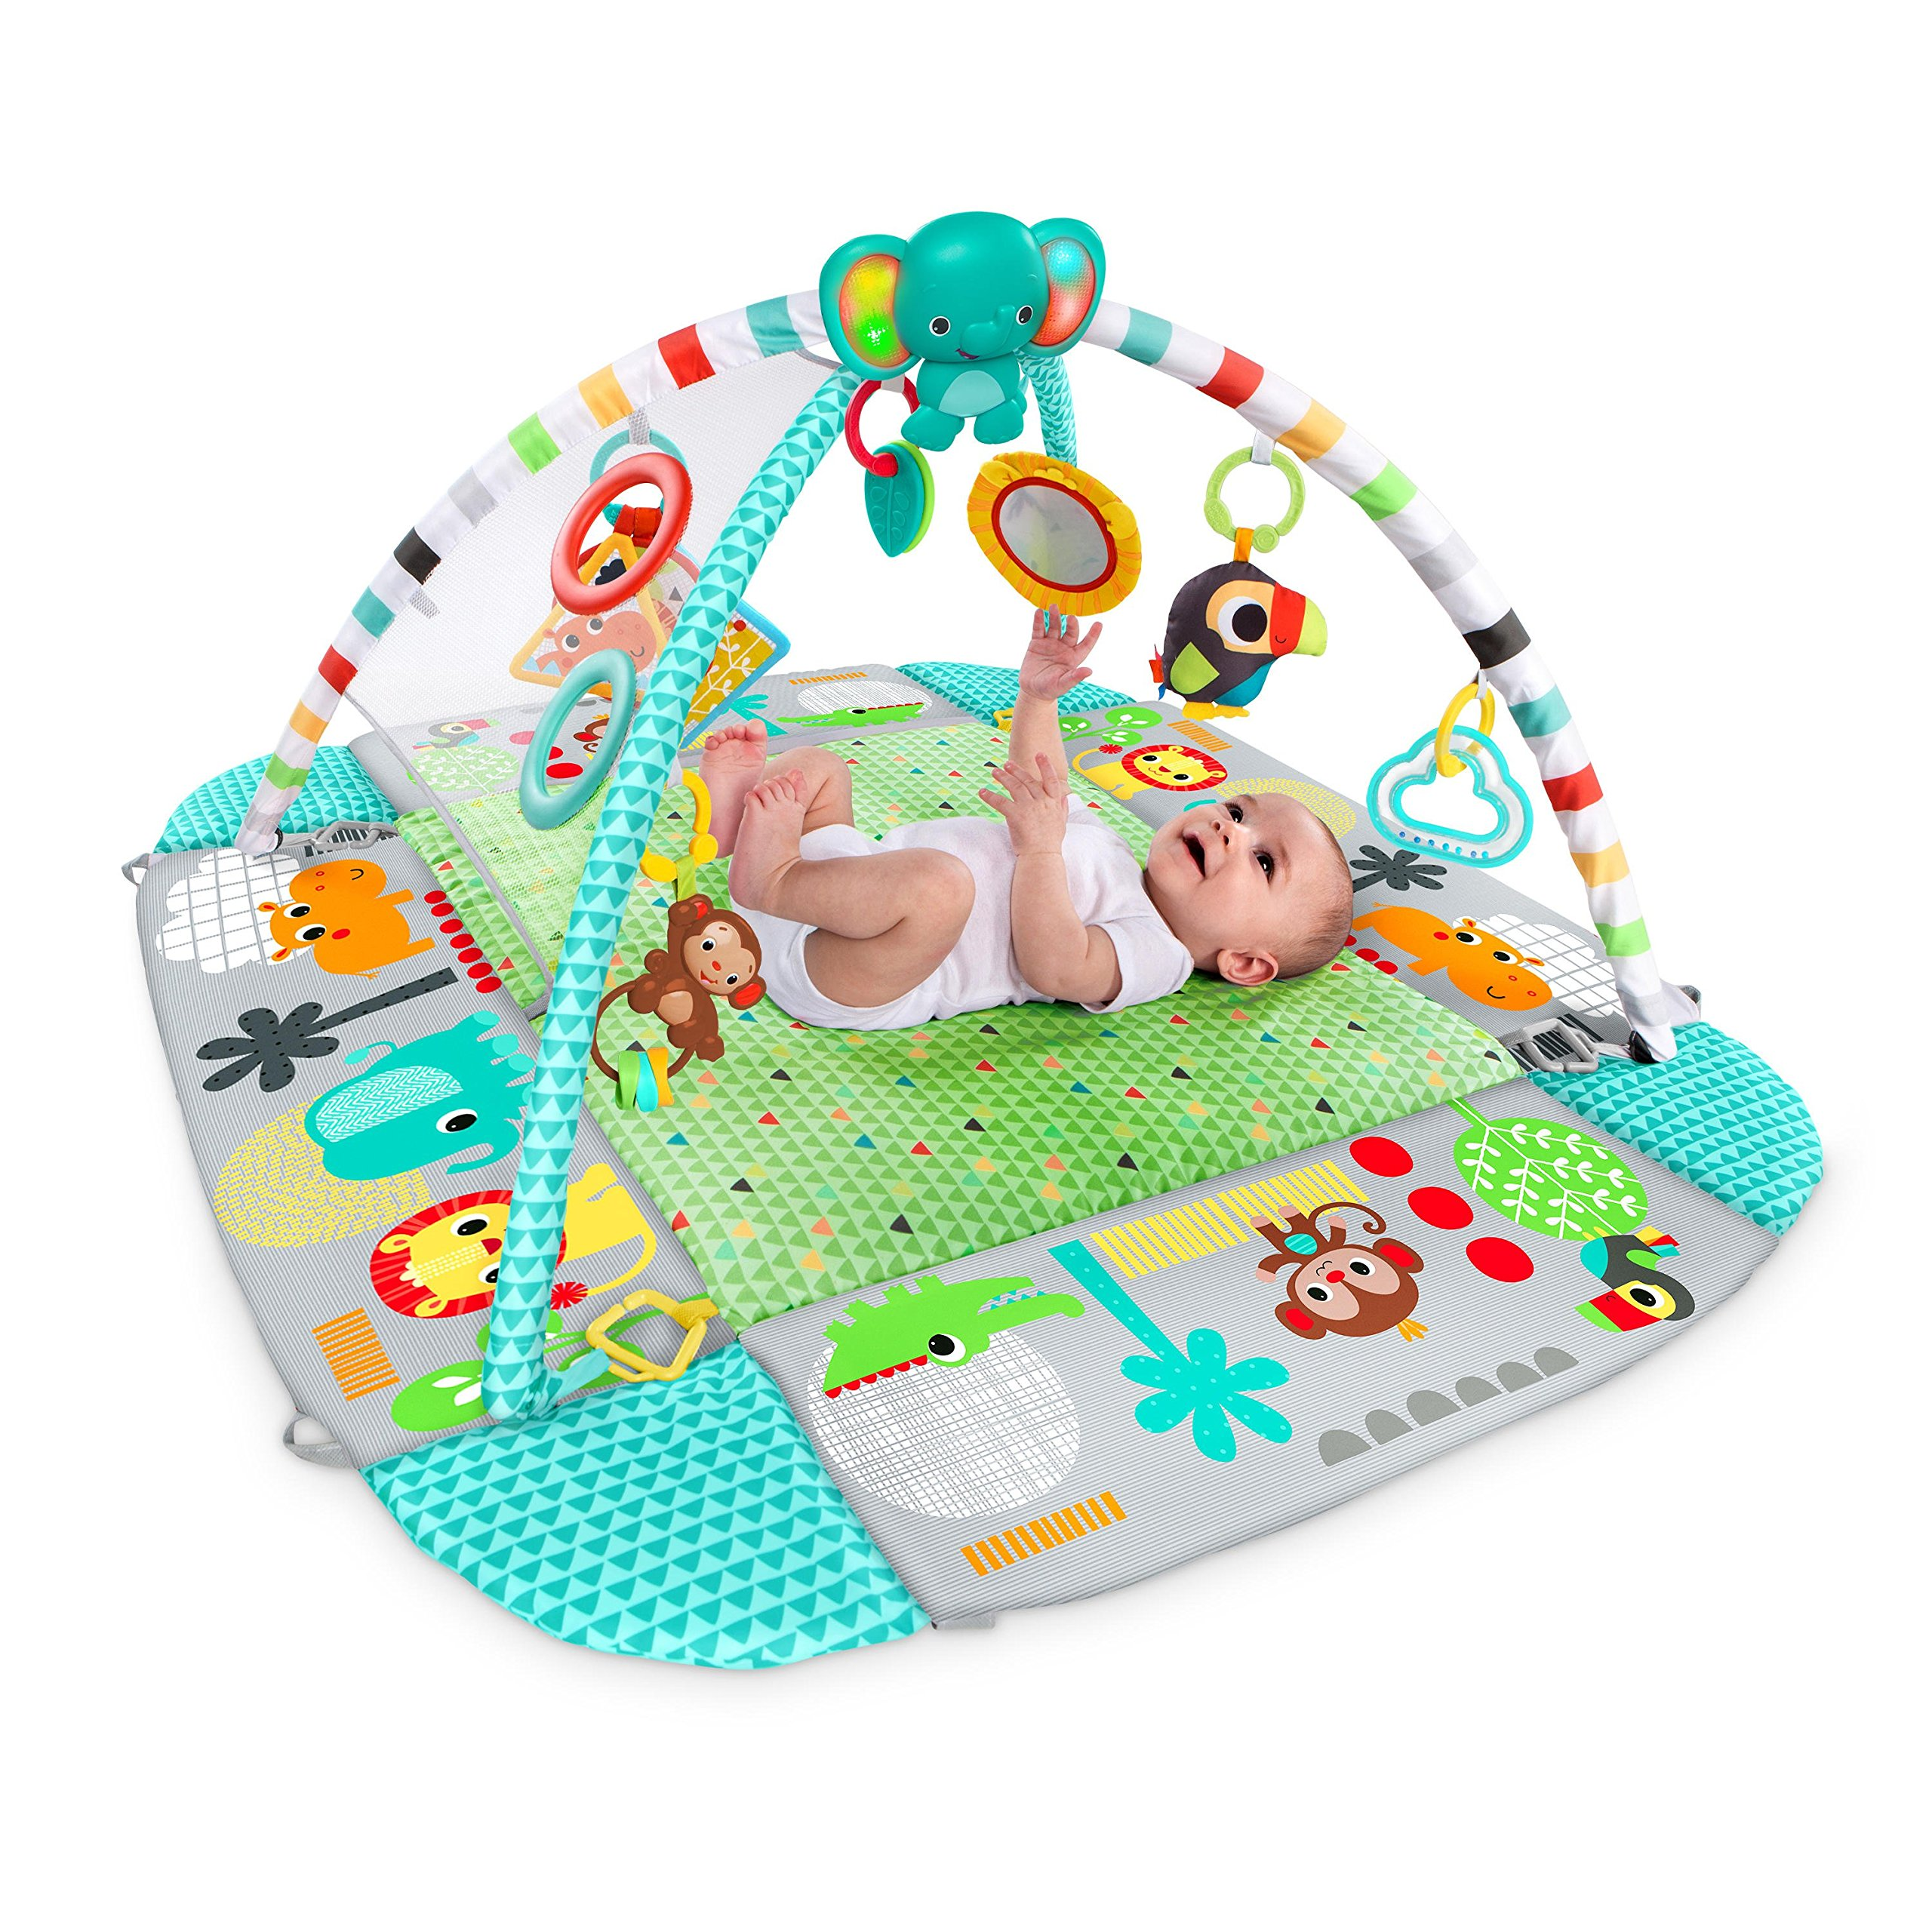 Bright Starts 5-in-1 Play Activity Gym, Your Way Ball by Bright Starts (Image #2)